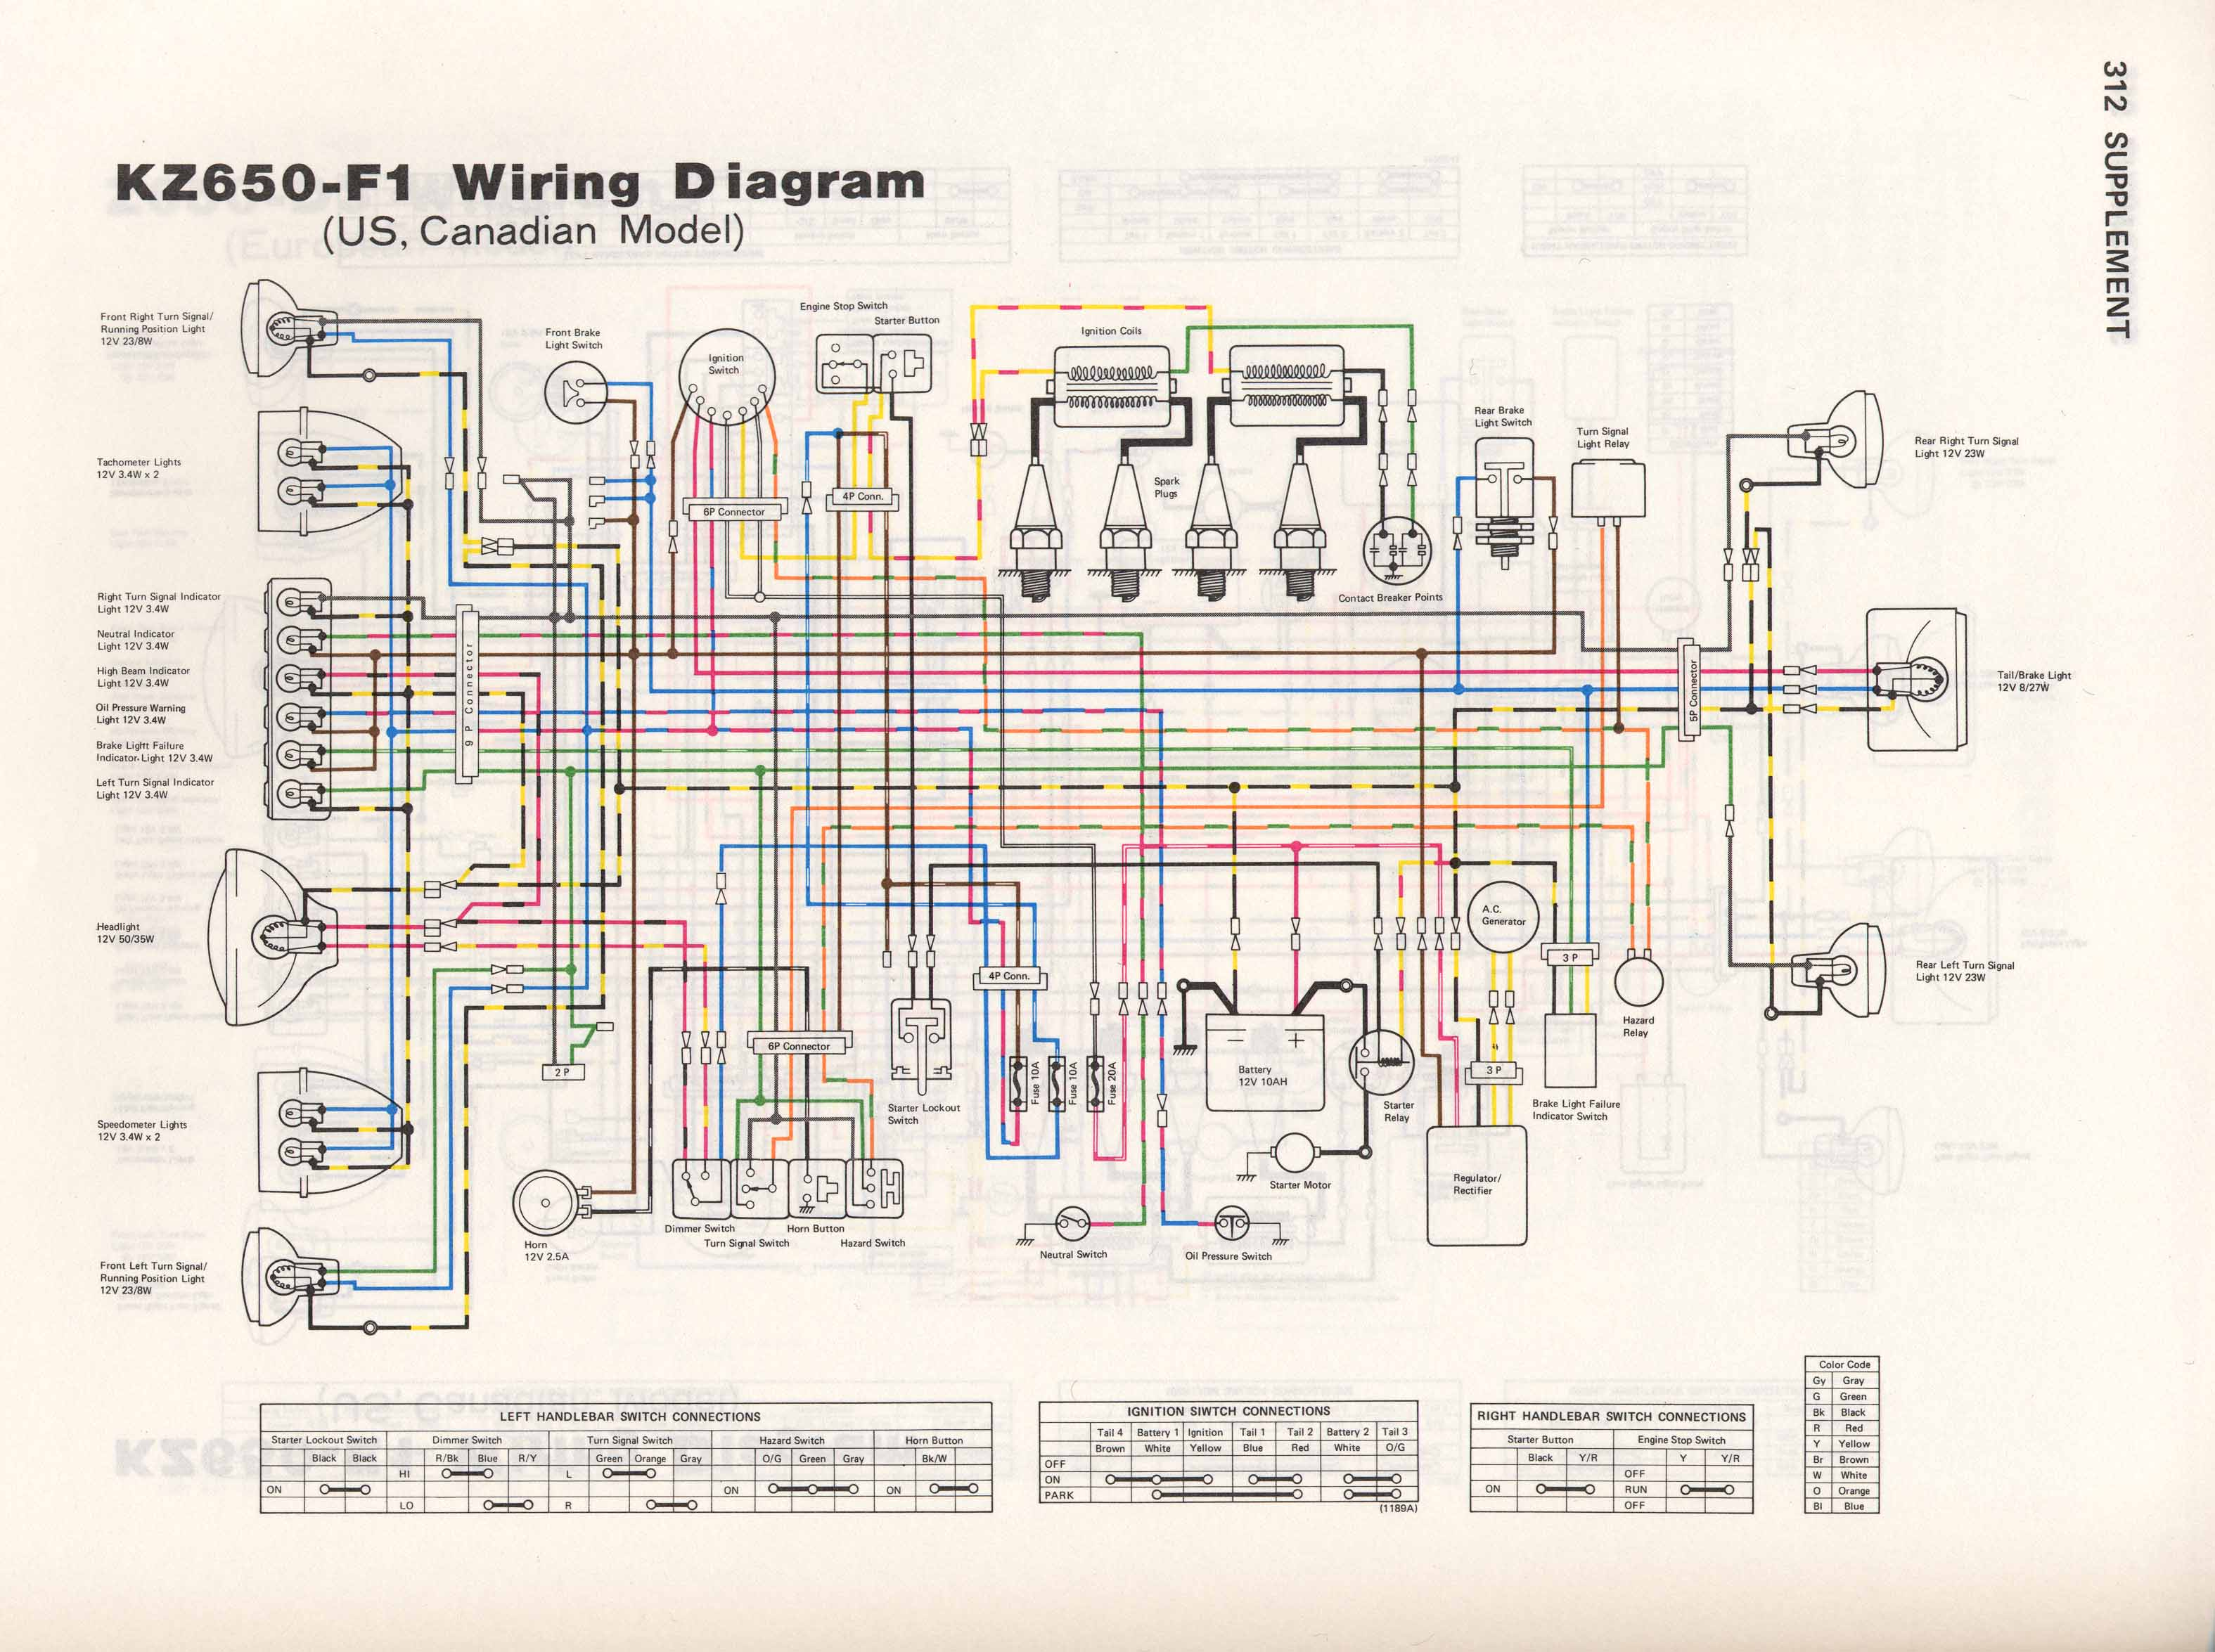 KZ650 F1 kawasaki kz650 wiring diagram vulcan 1500 wiring diagram \u2022 free 1981 kawasaki 440 ltd wiring diagram at bayanpartner.co